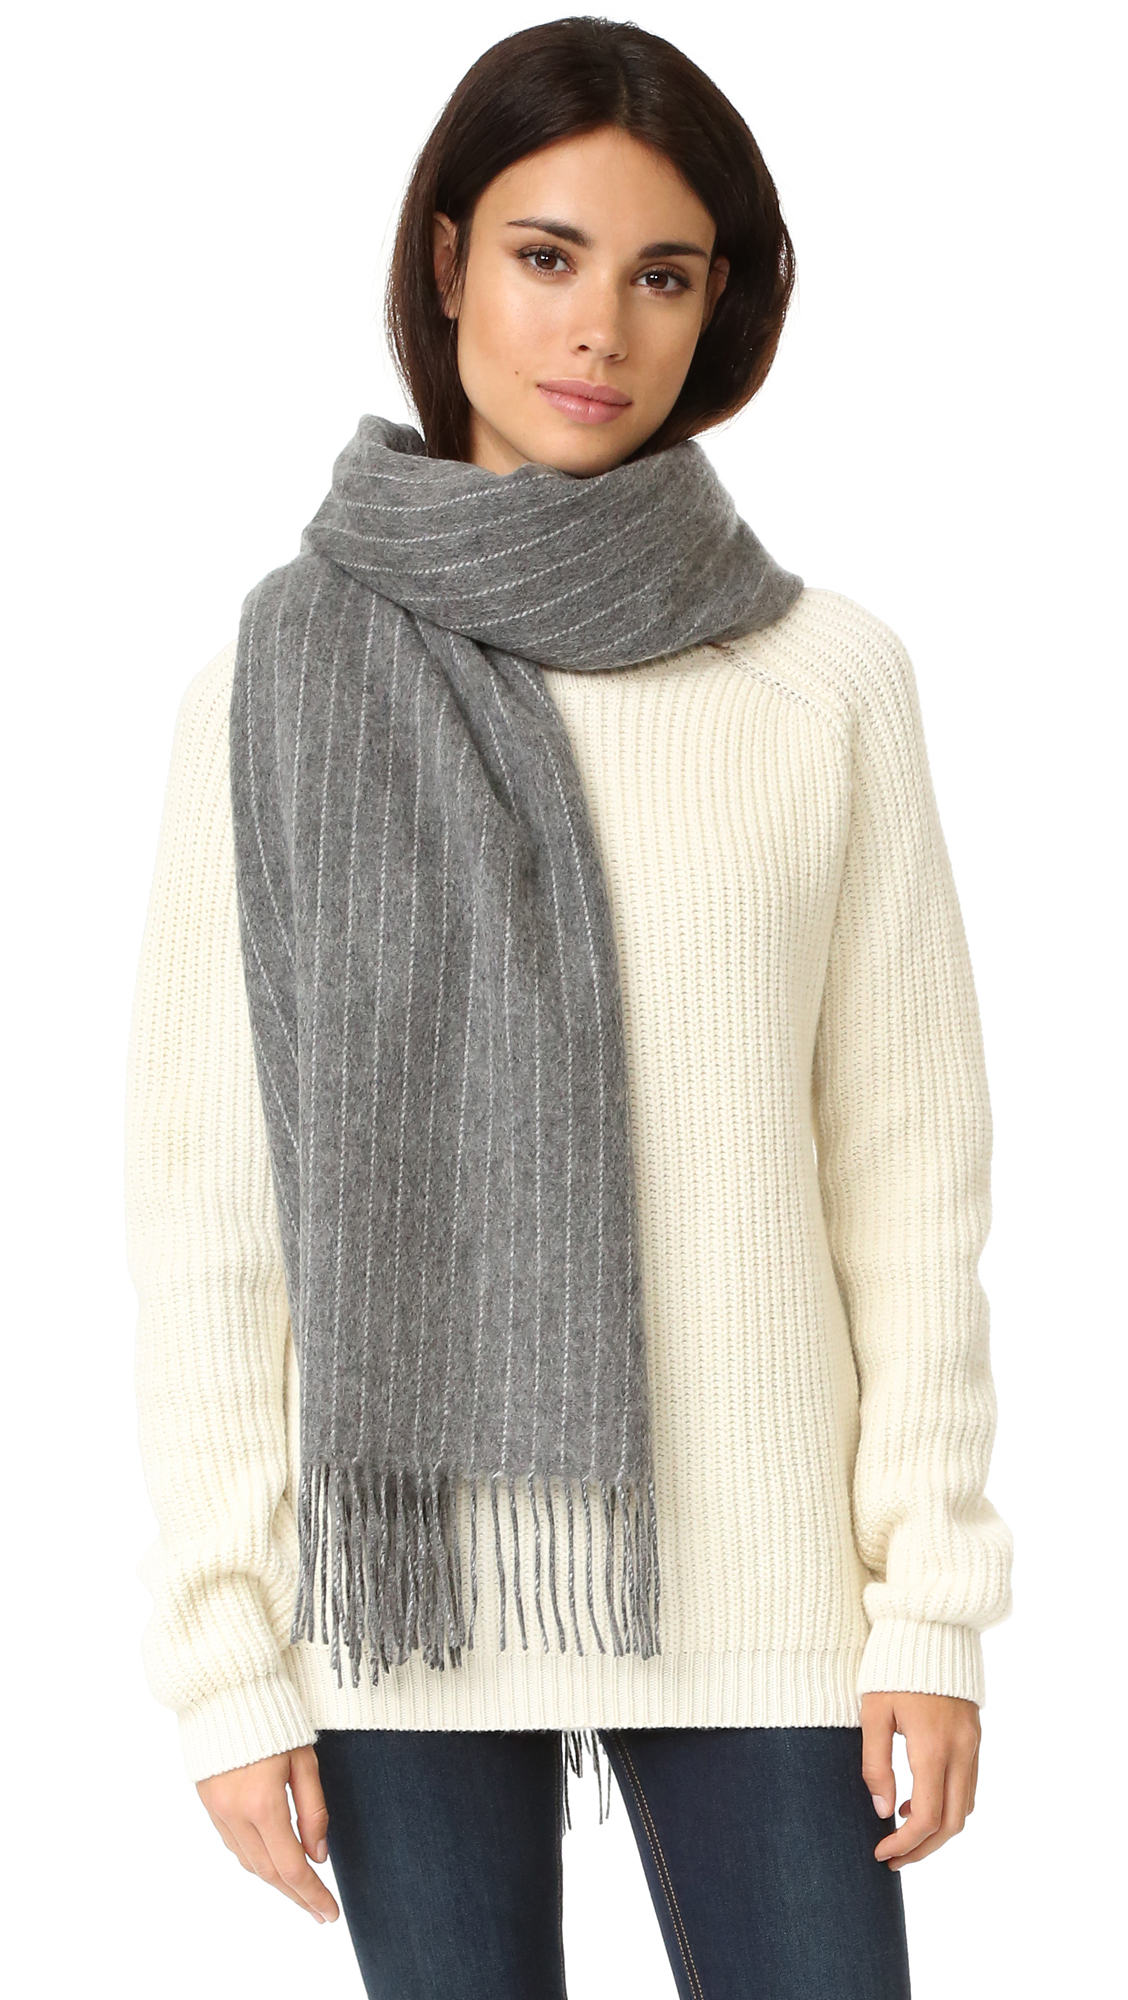 Rag & Bone Brushed Pinstripe Scarf - Charcoal